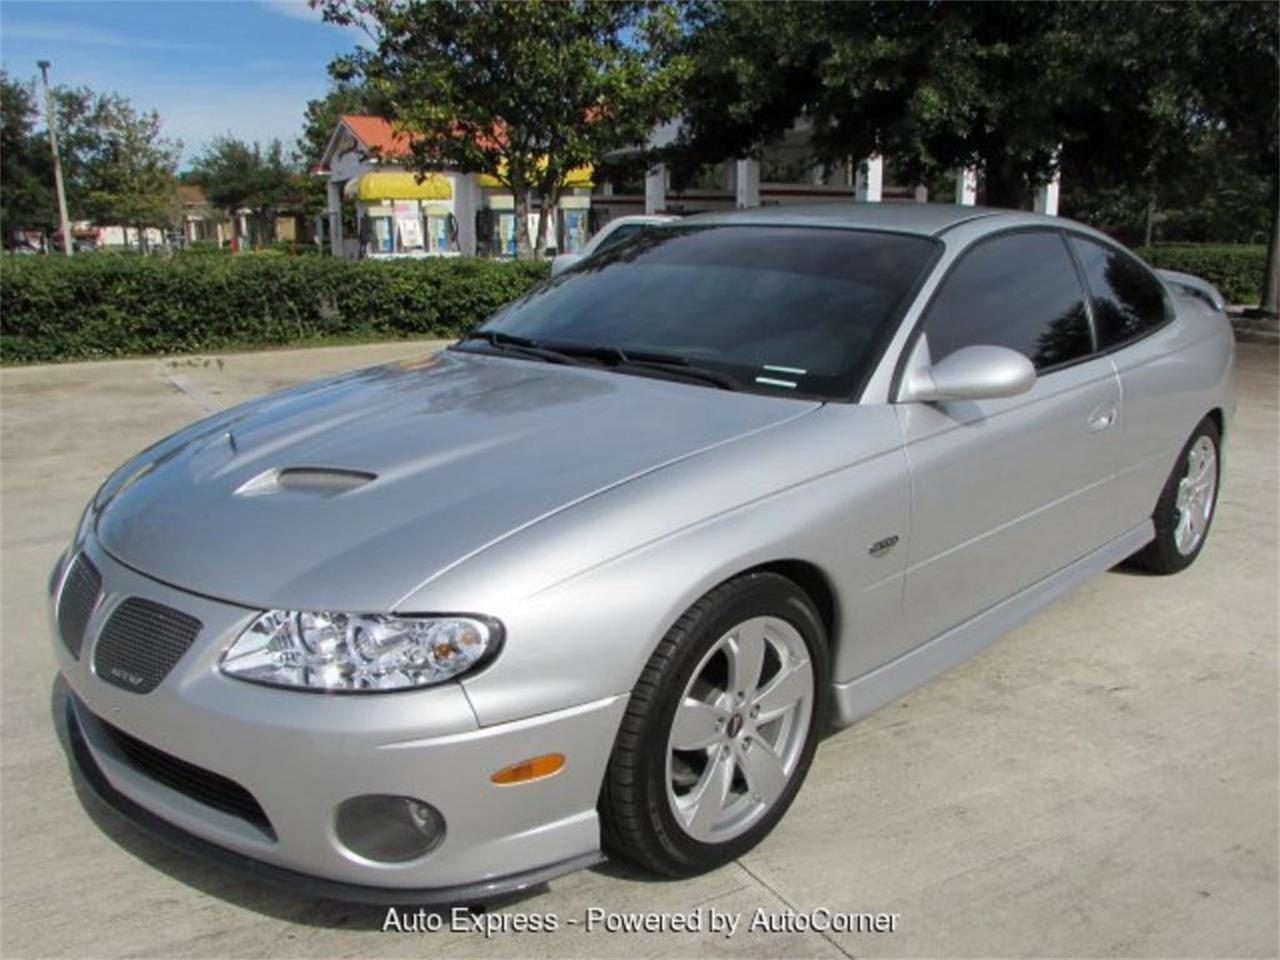 Large Picture of '05 Pontiac GTO - $13,999.00 Offered by Auto Express - Q2A5